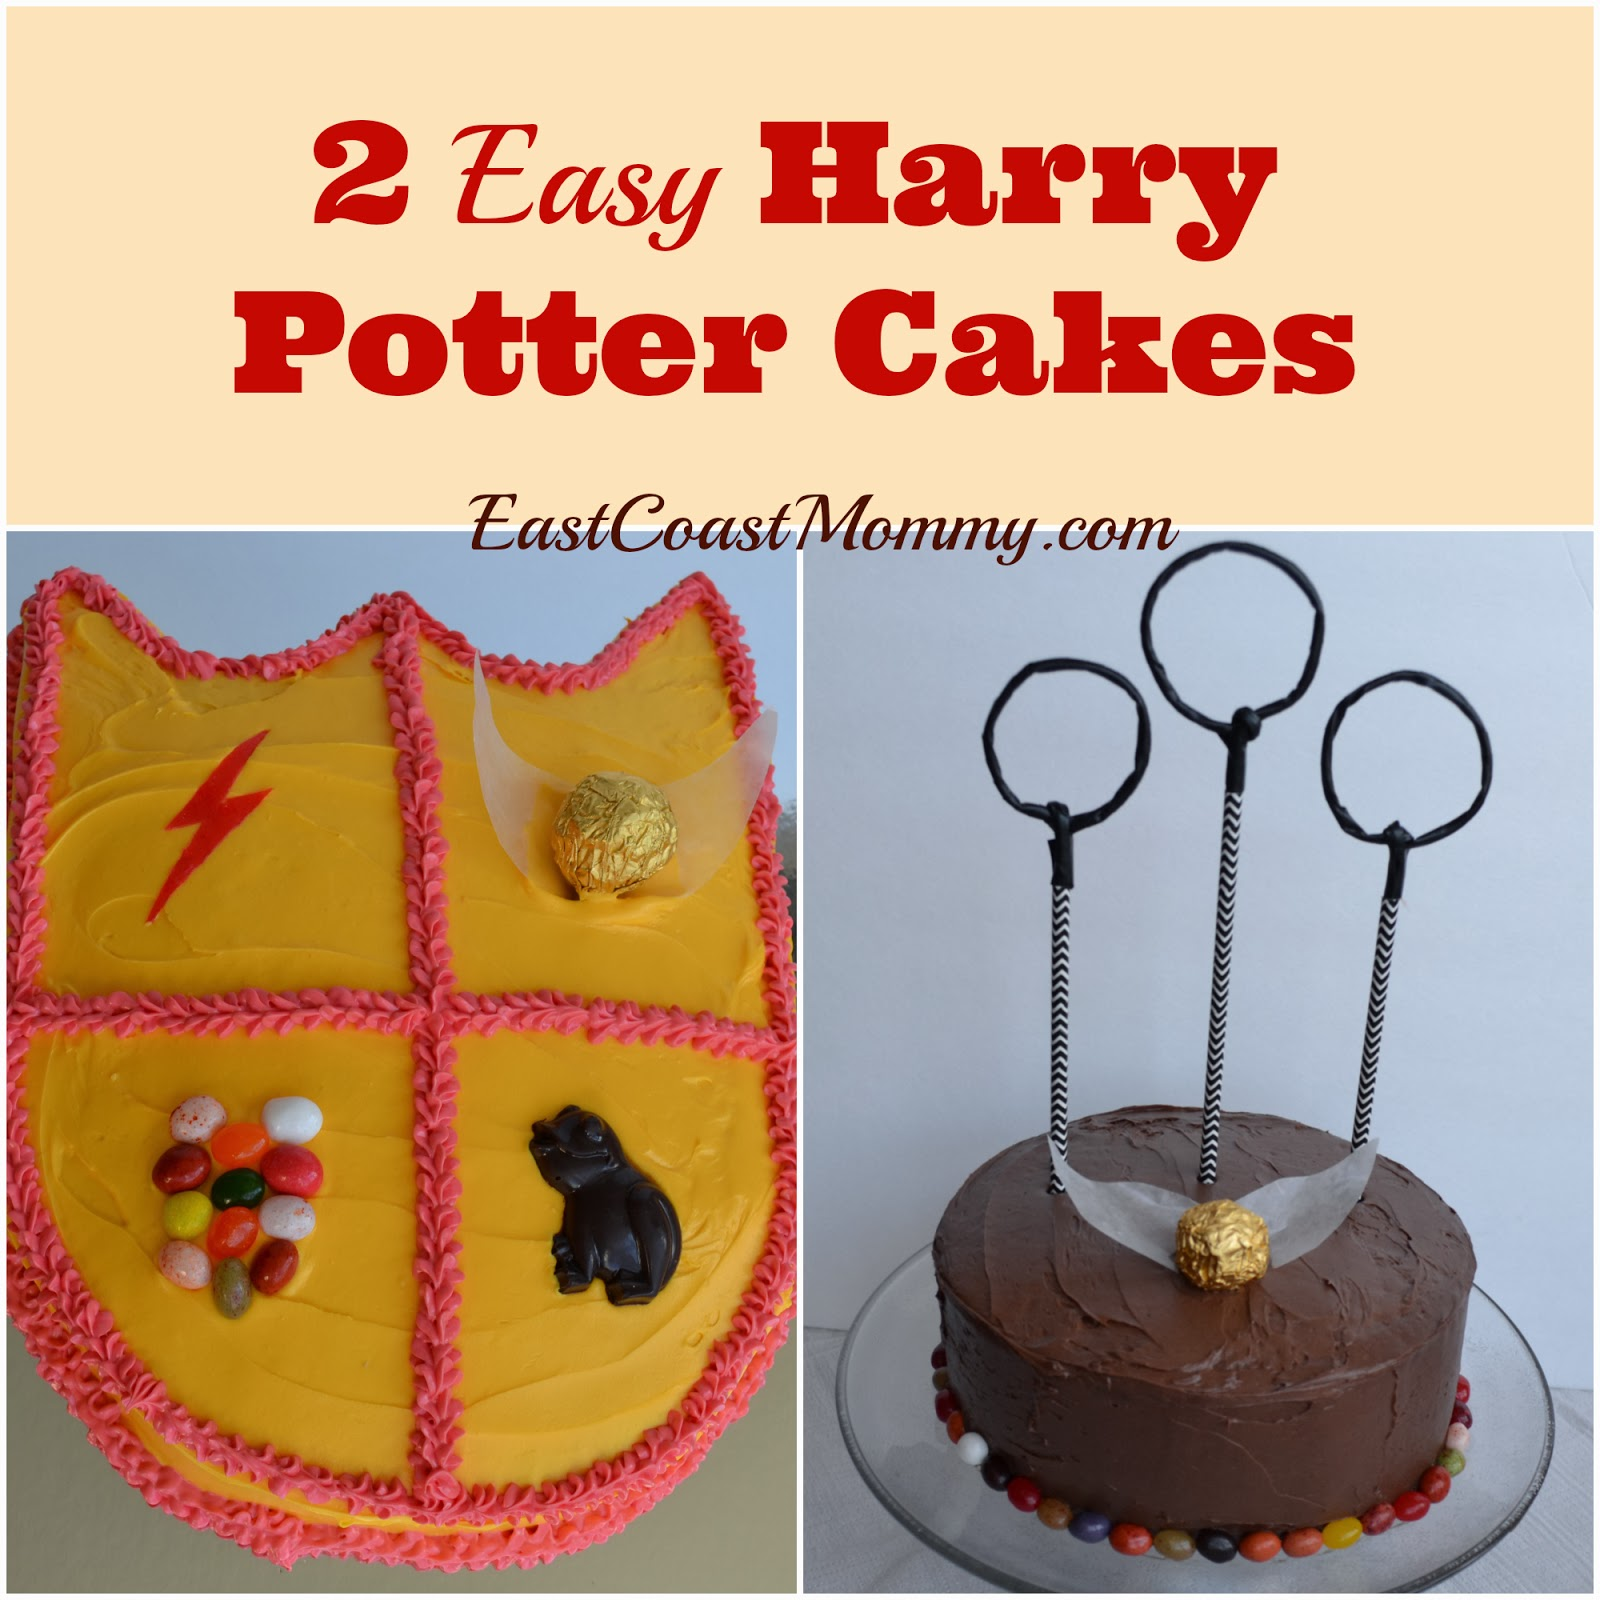 Diy Wooden Games East Coast Mommy The Ultimate Diy Harry Potter Party